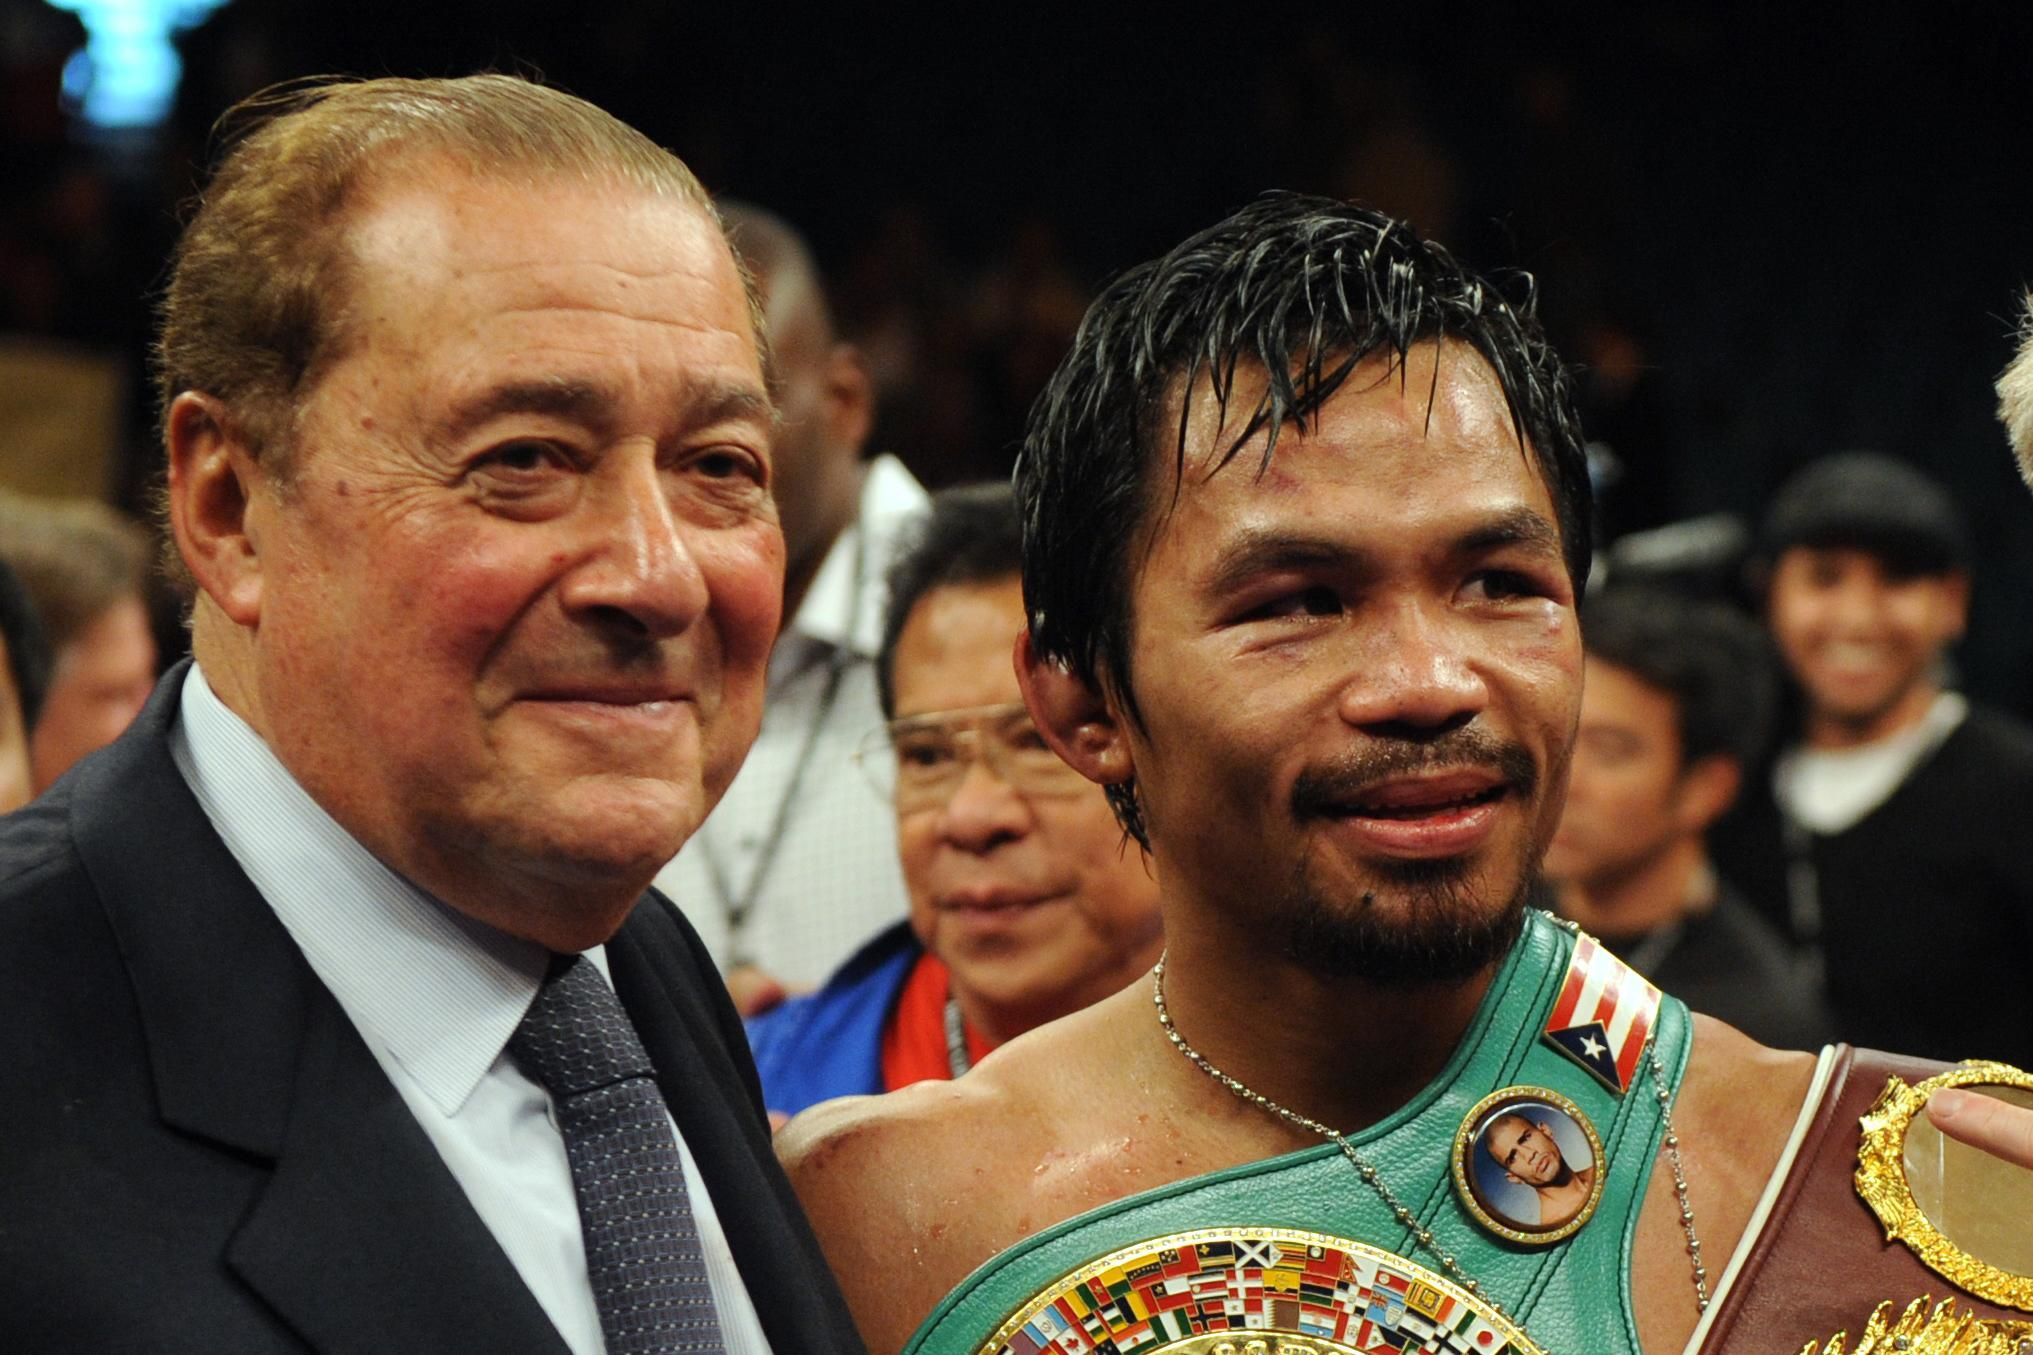 Bob Arum has been in boxing for over 50 years, promoting stars from Muhammad Ali to Manny Pacquiao